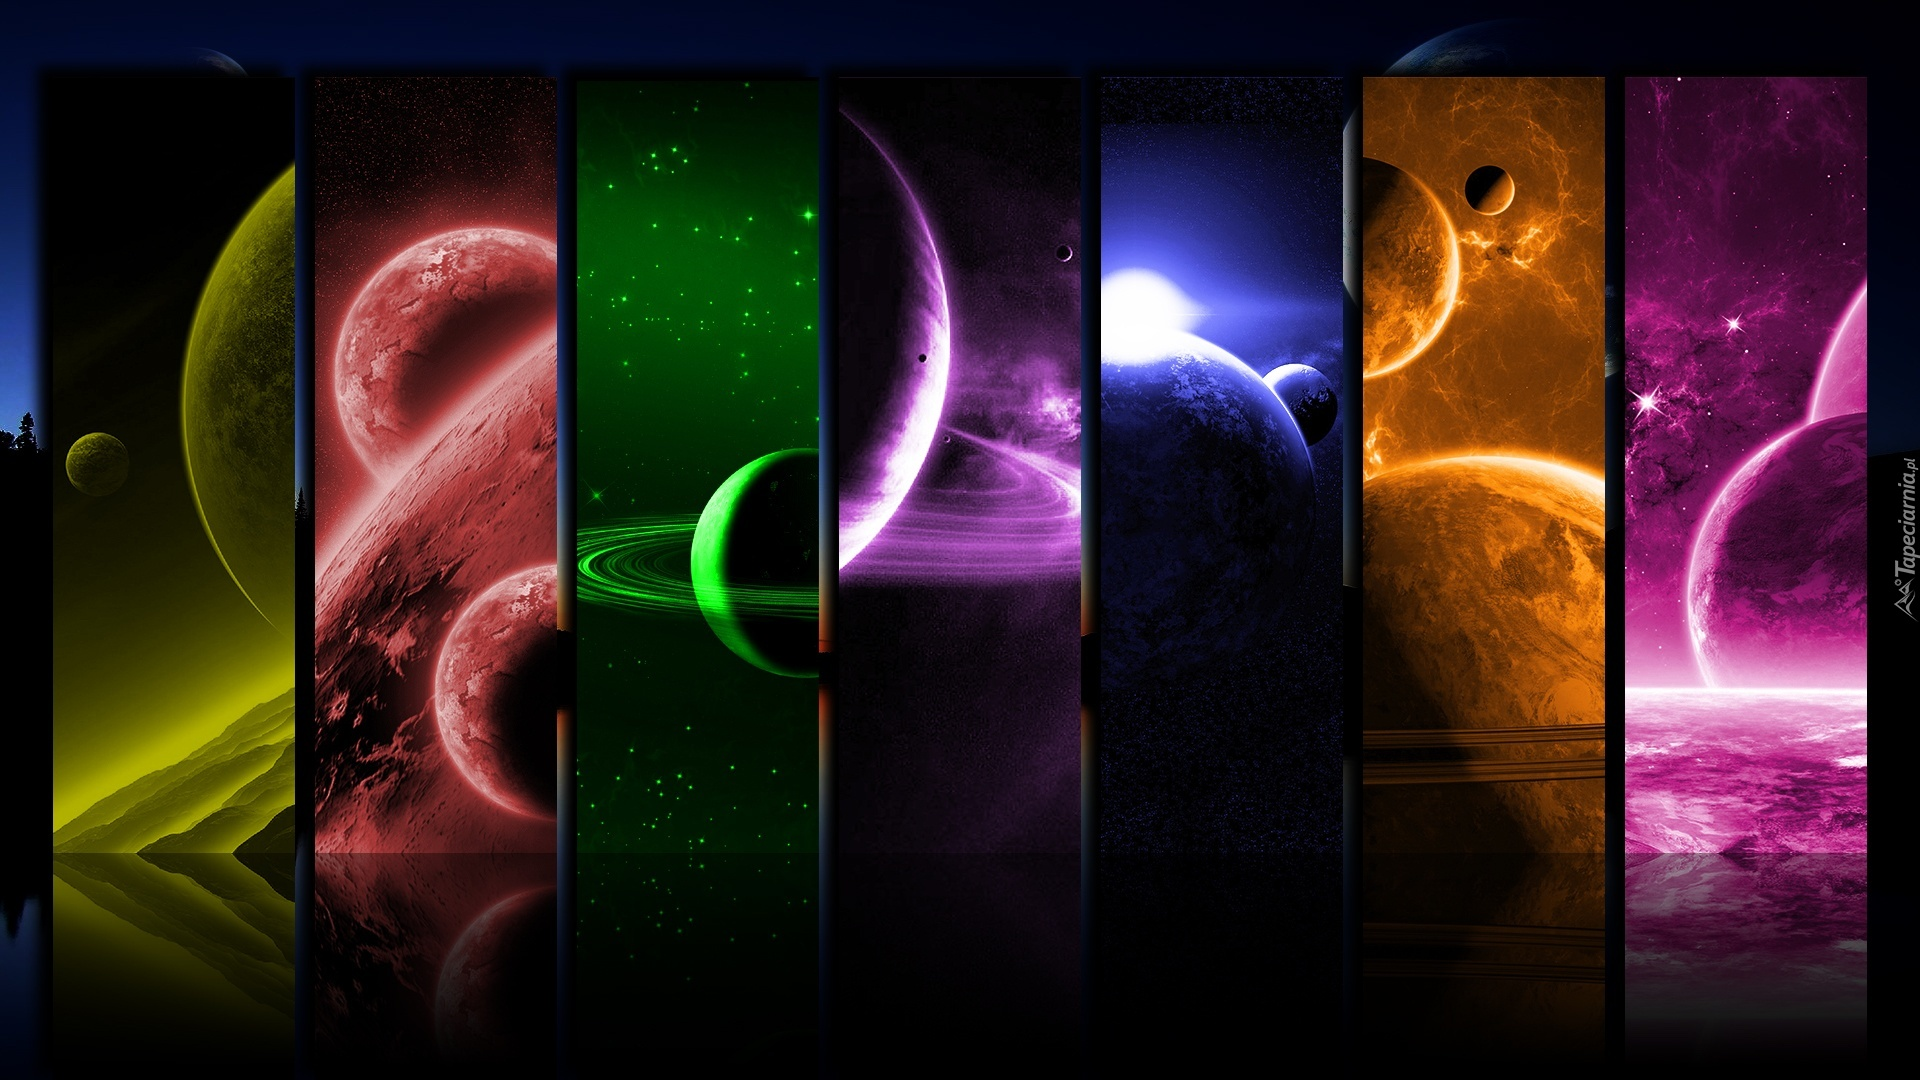 planets 3d windows background - photo #33